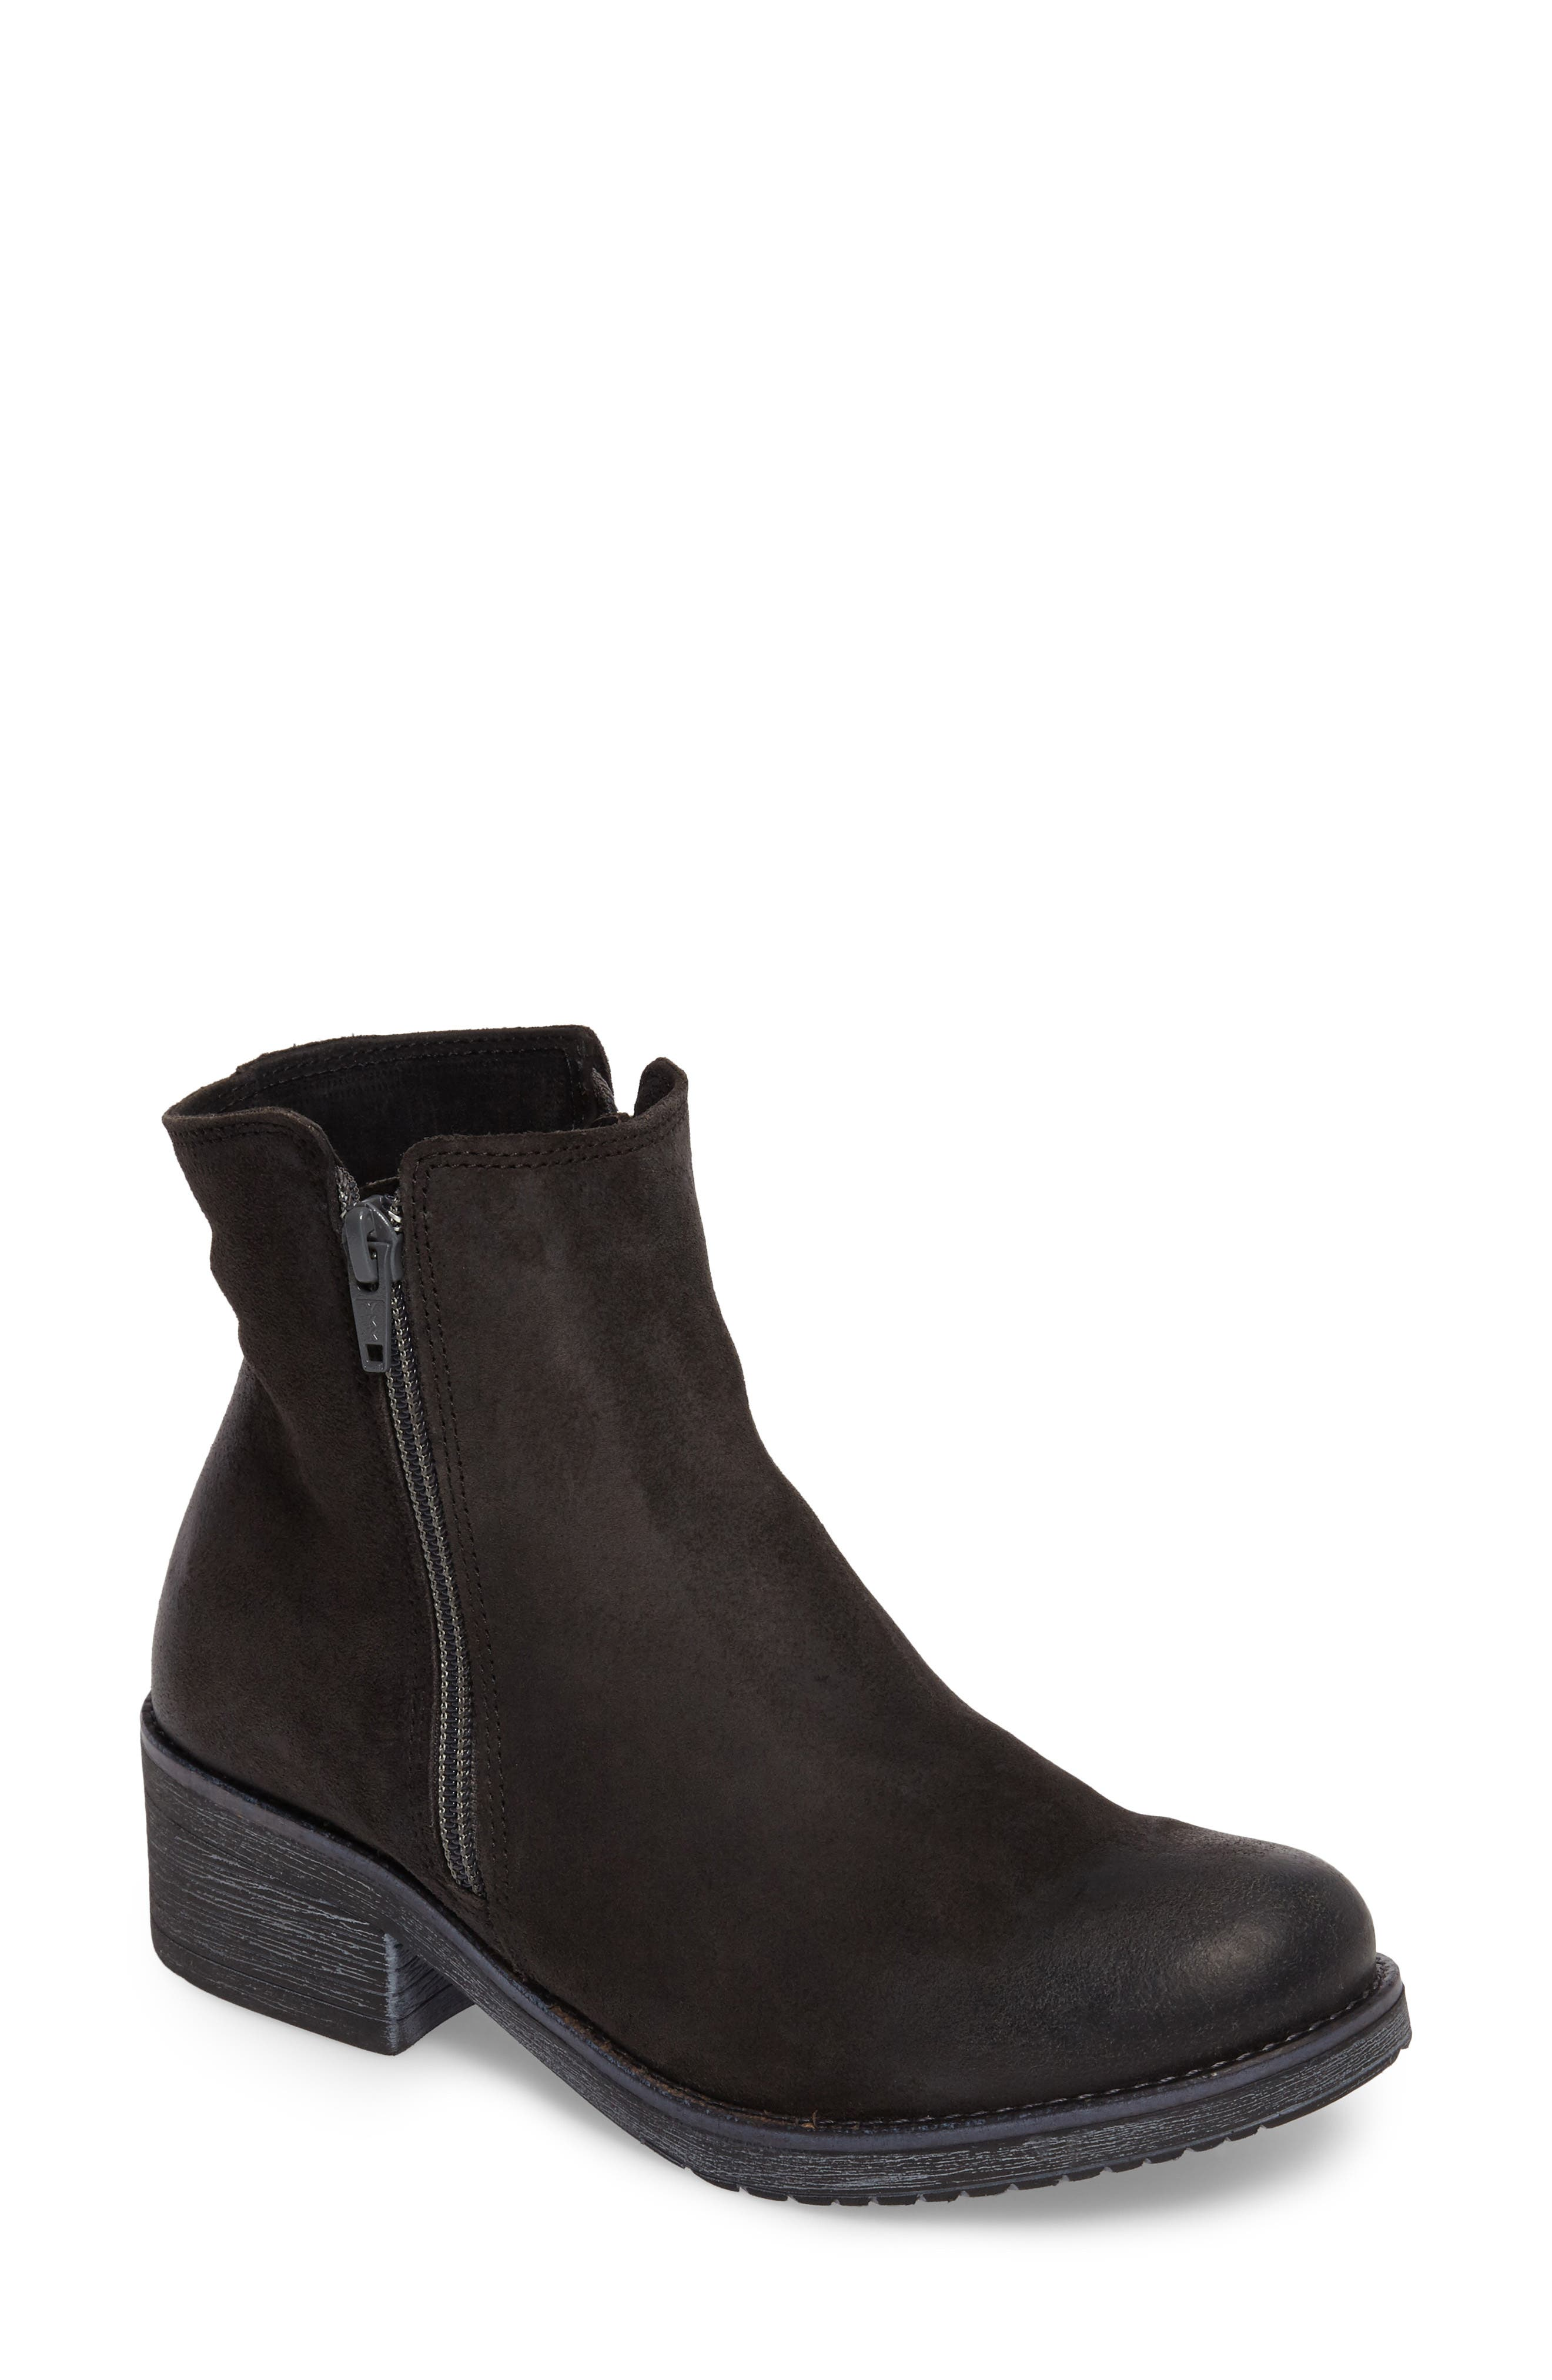 Wander Boot,                         Main,                         color, OILY MIDNIGHT SUEDE